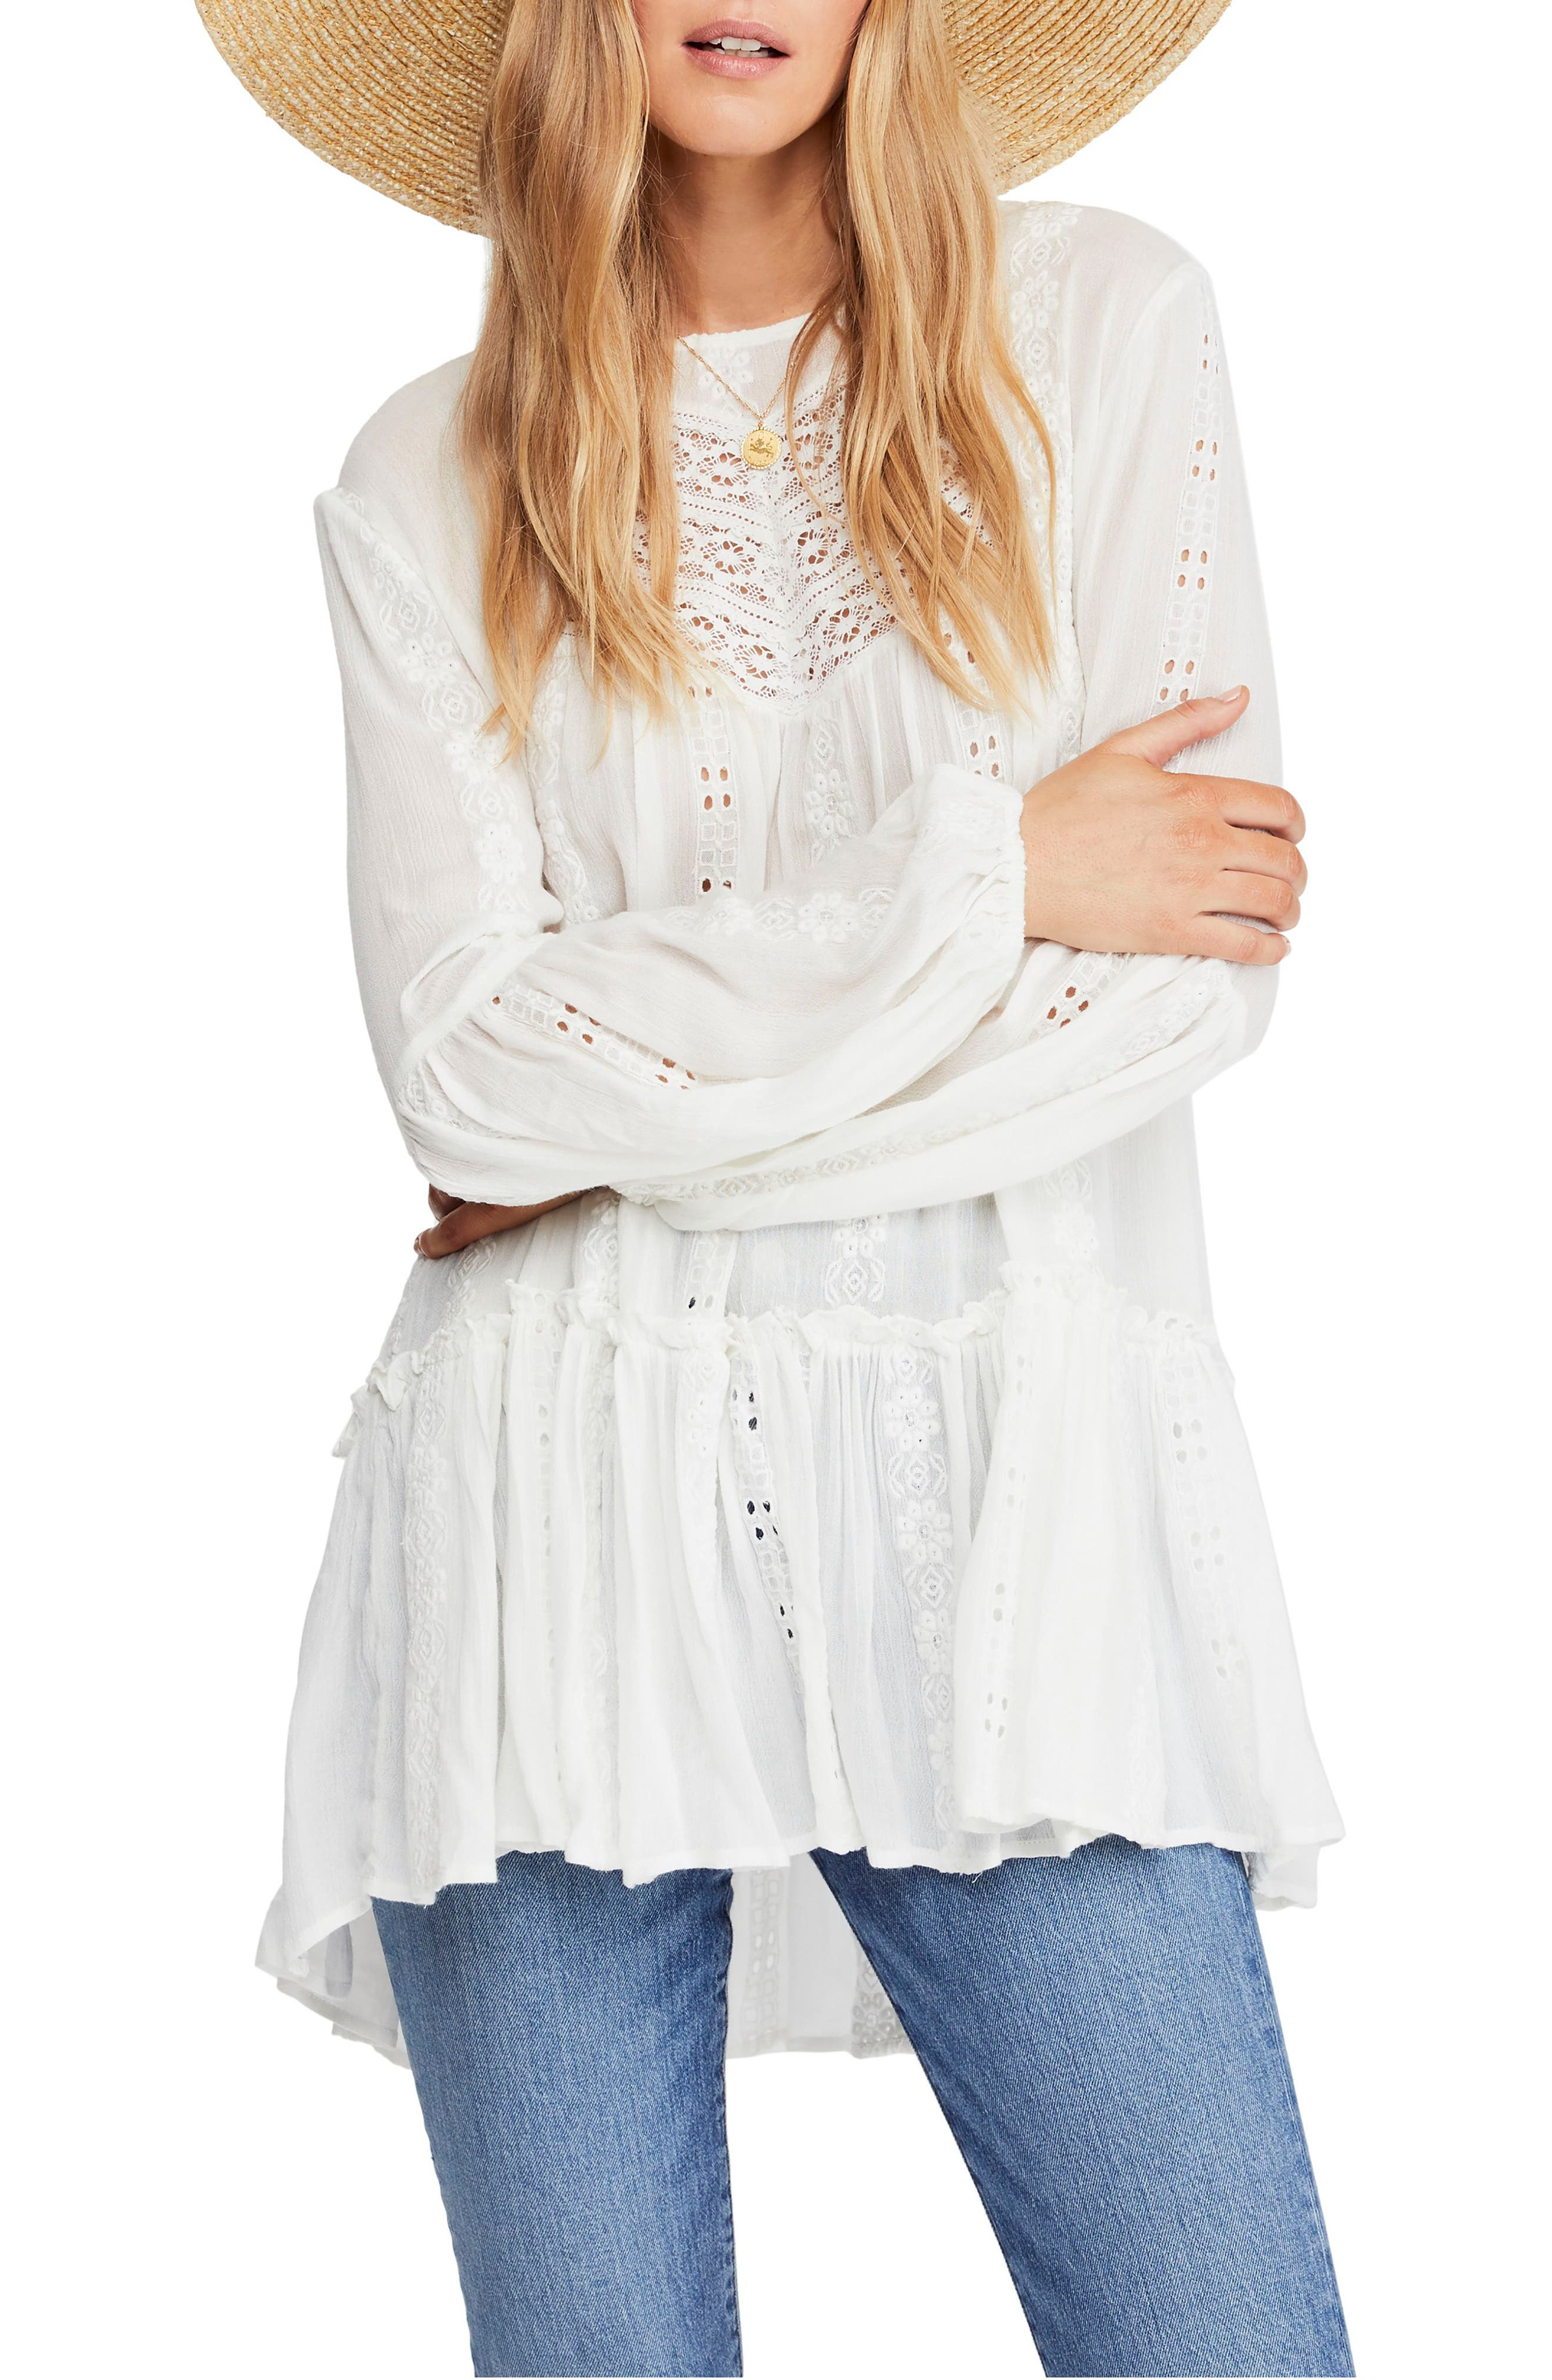 FREE PEOPLE, Kiss Kiss Tunic, Main thumbnail 1, color, 103